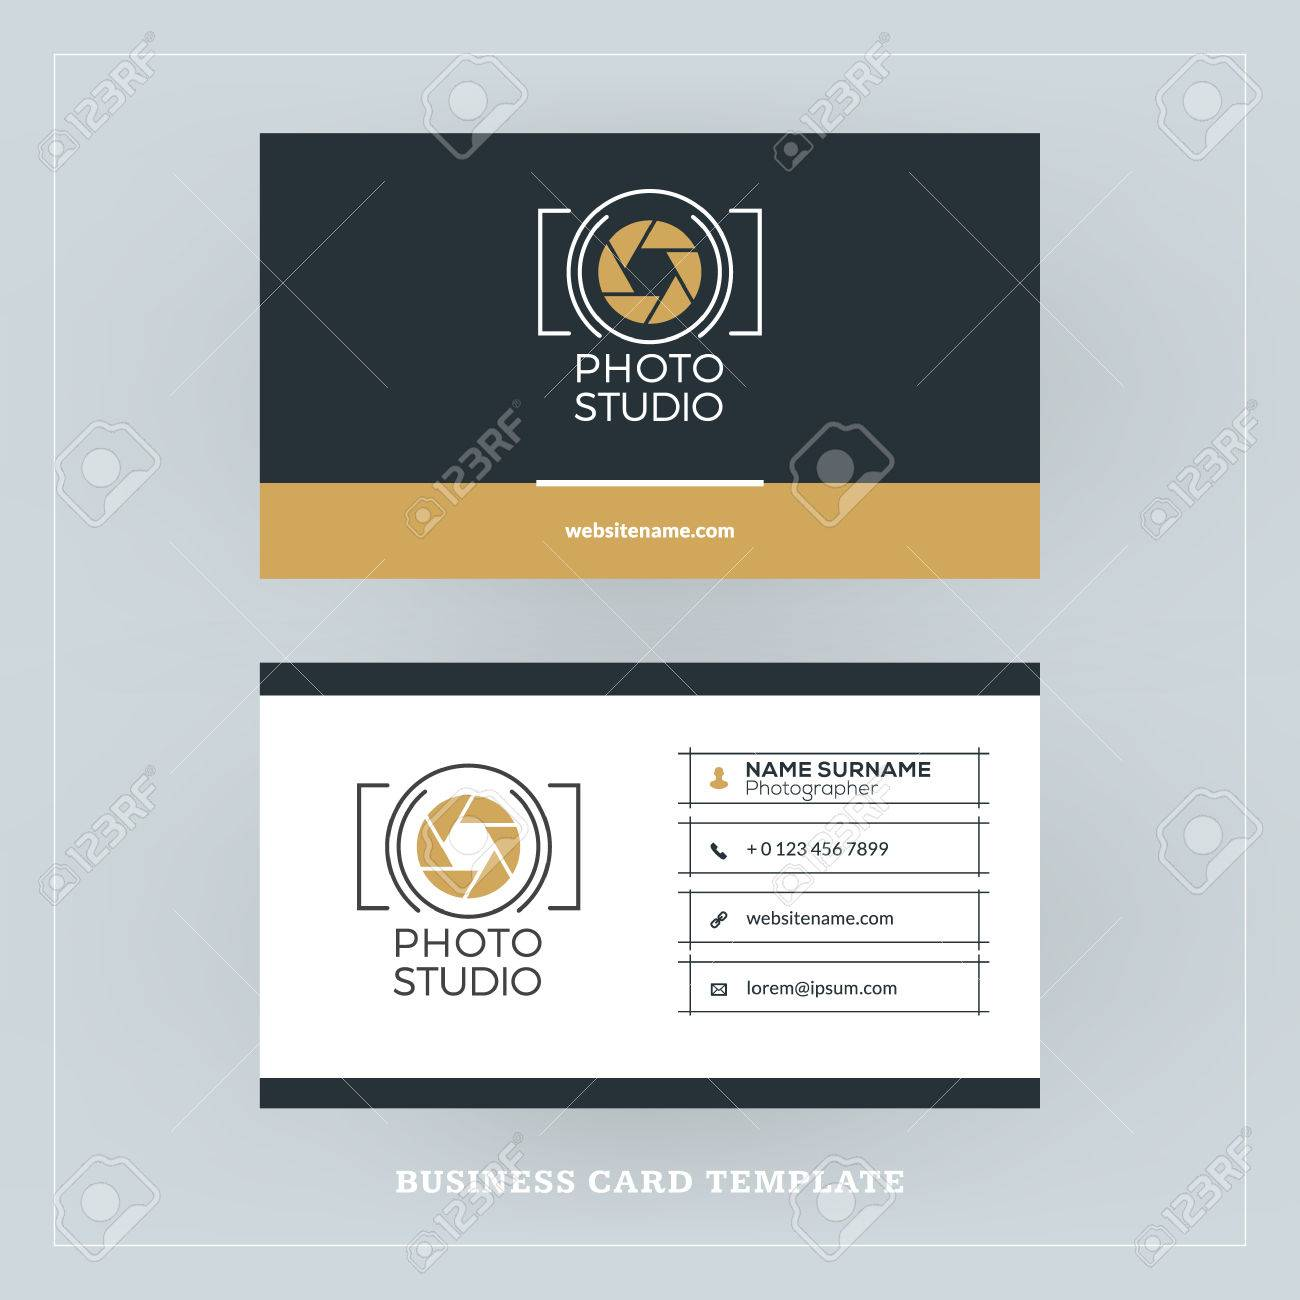 Golden and black business card design template business card golden and black business card design template business card for photographer or graphic designer flashek Images